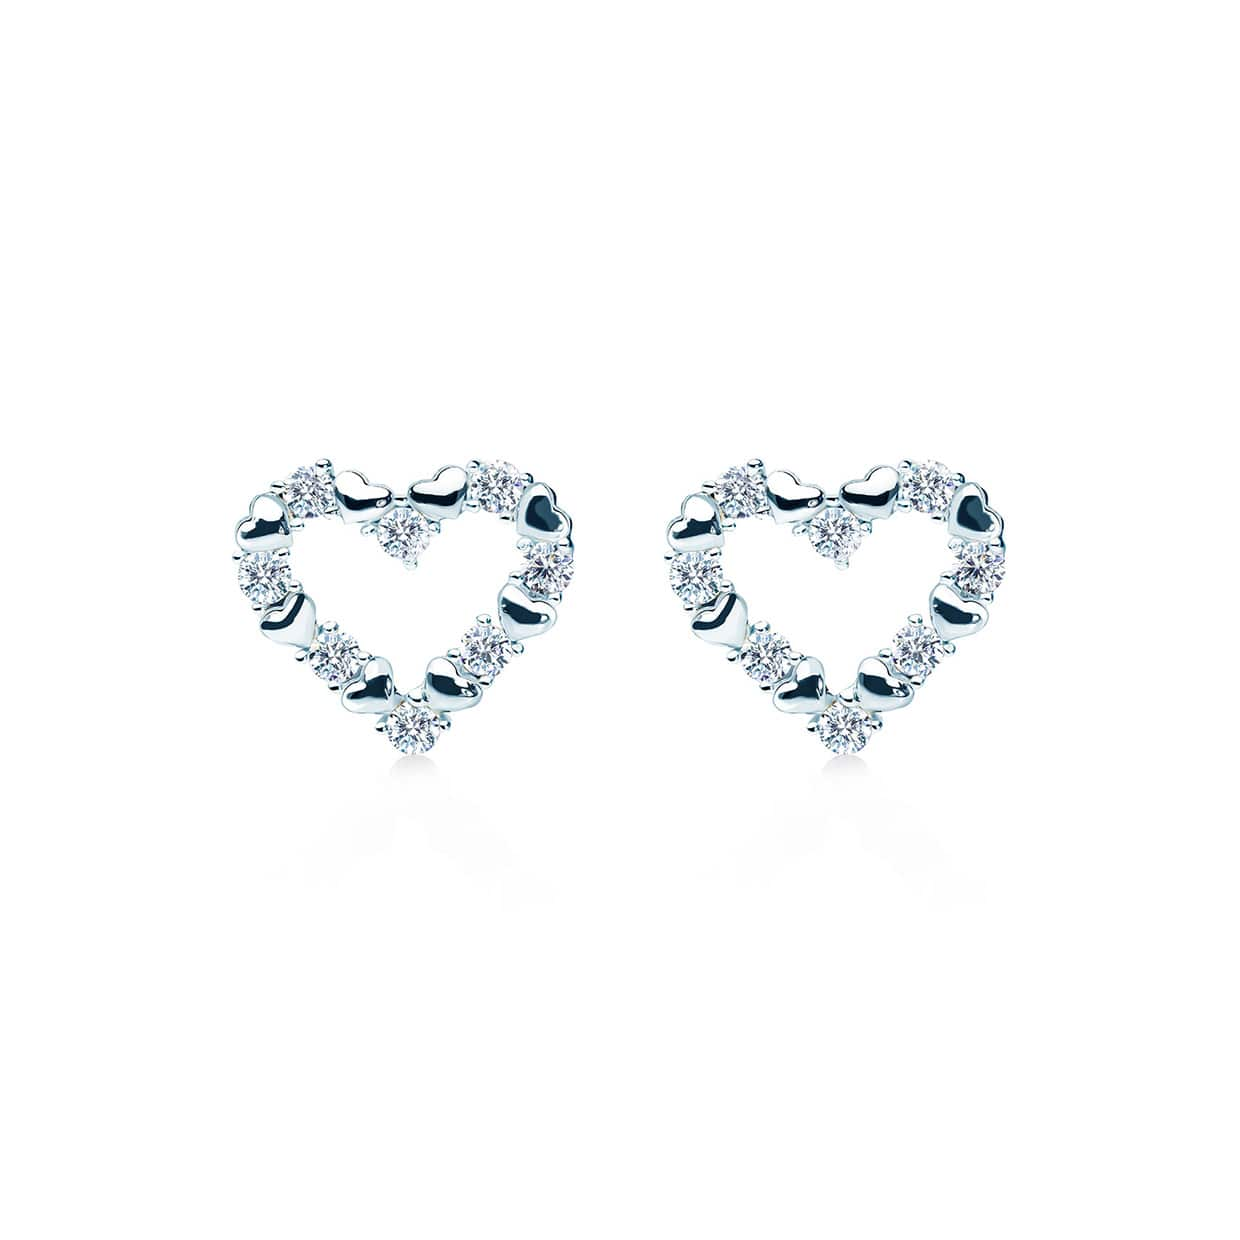 Loving Silver Earrings - Abelstedt